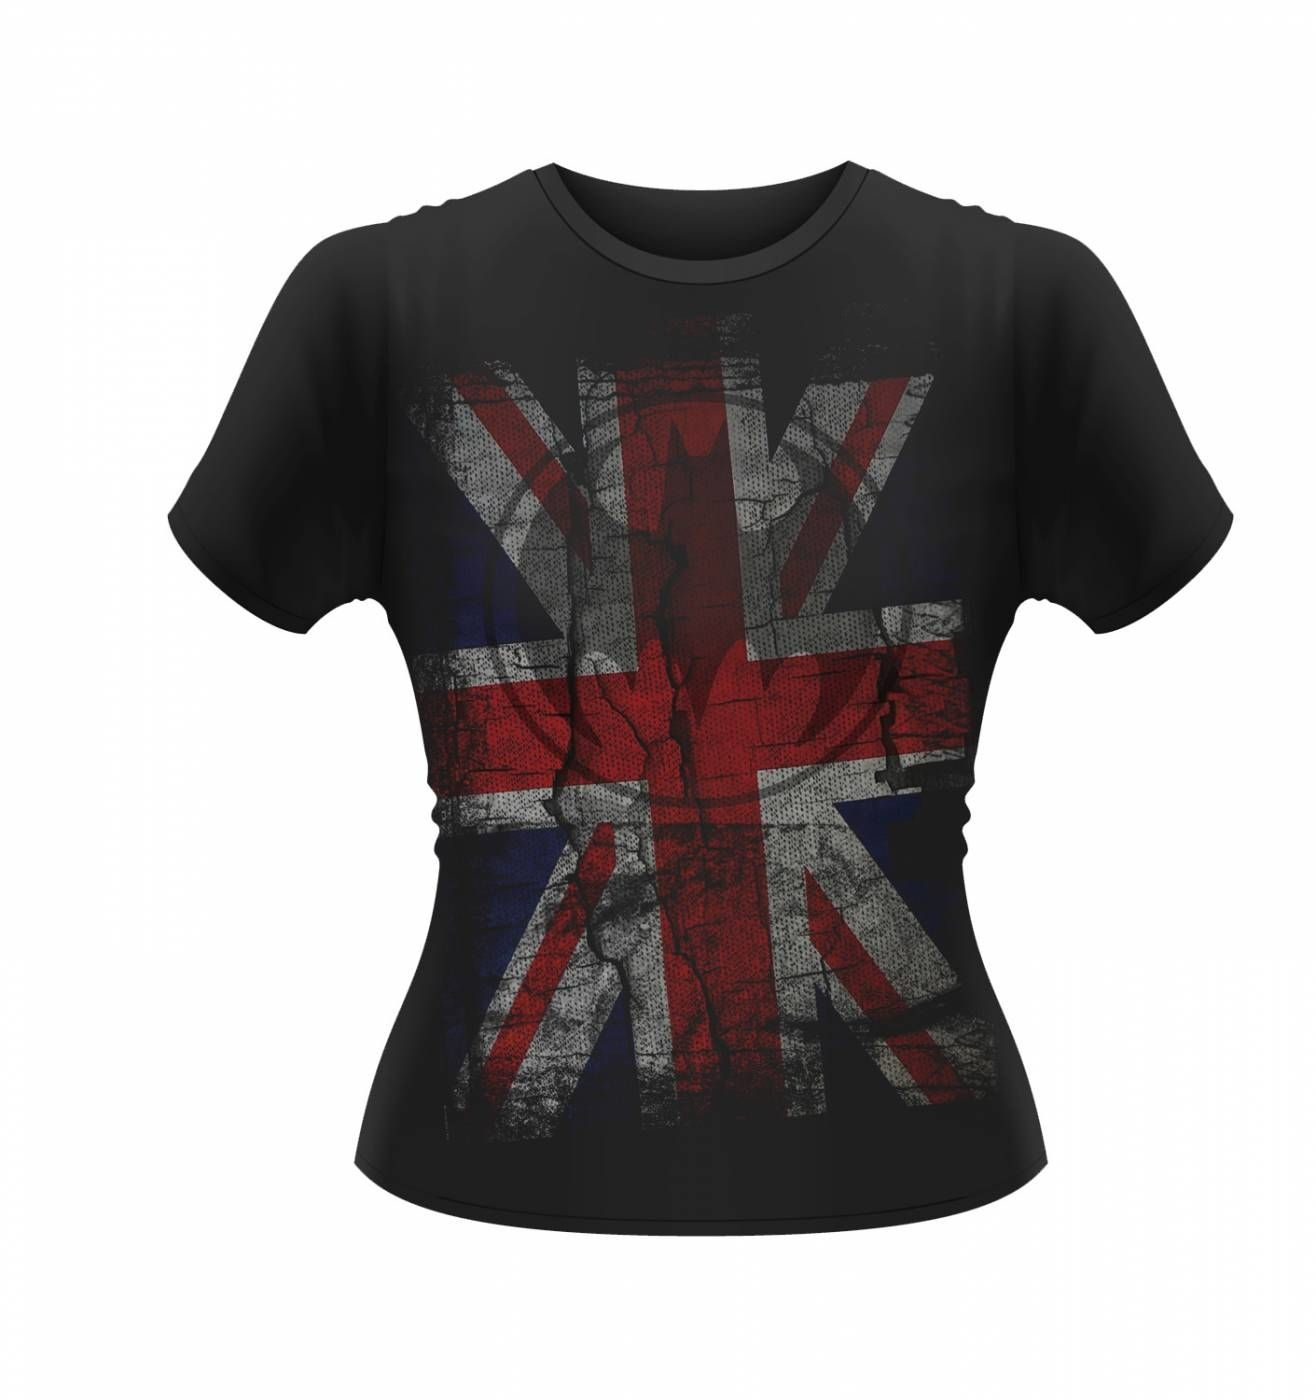 OFFICIAL DC Originals Retro Union Jack Batman t-shirt women's t-shirt